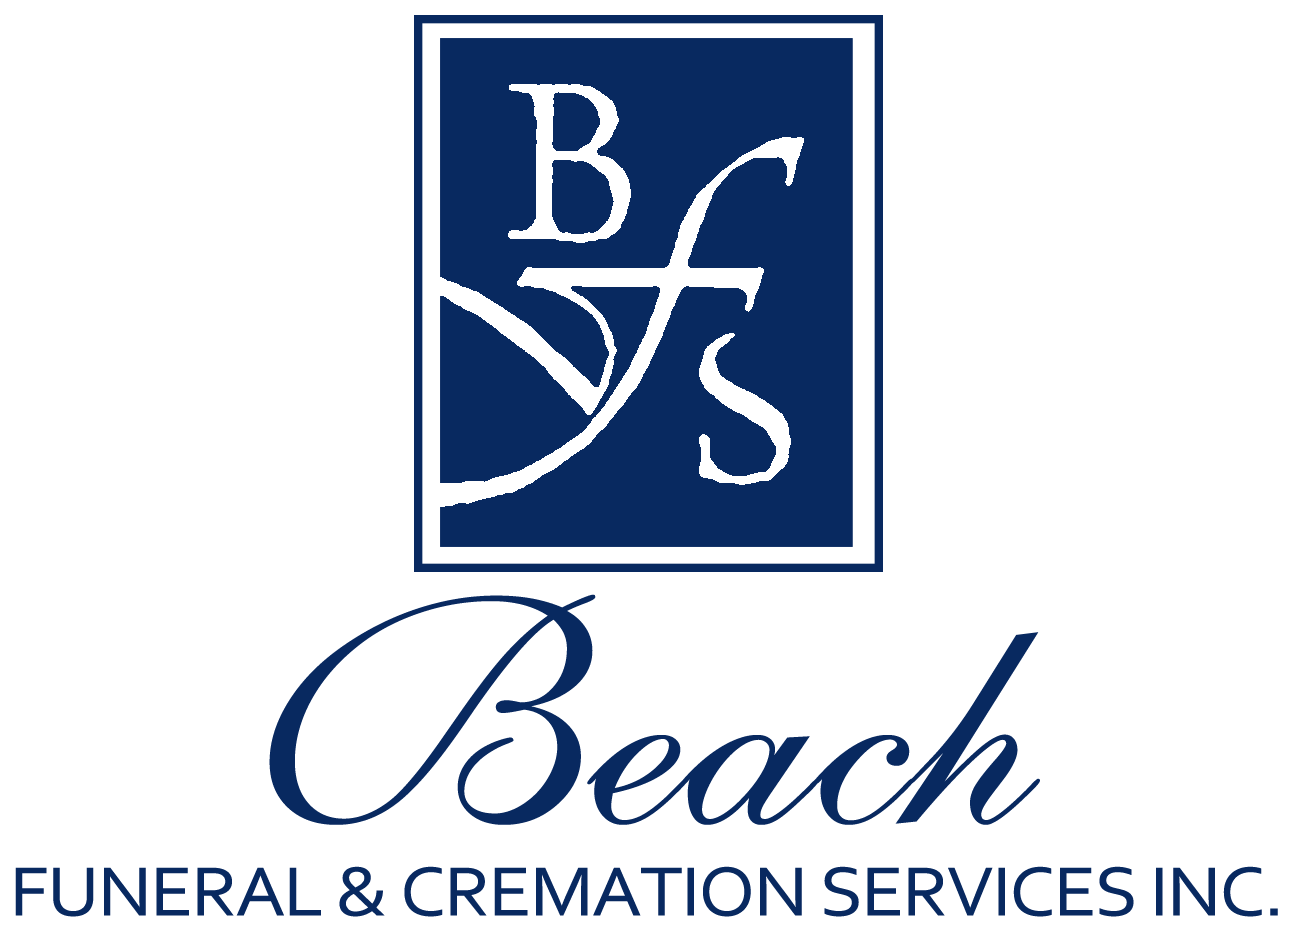 All Obituaries | Beach Funeral & Cremation Services, Inc  | Virginia